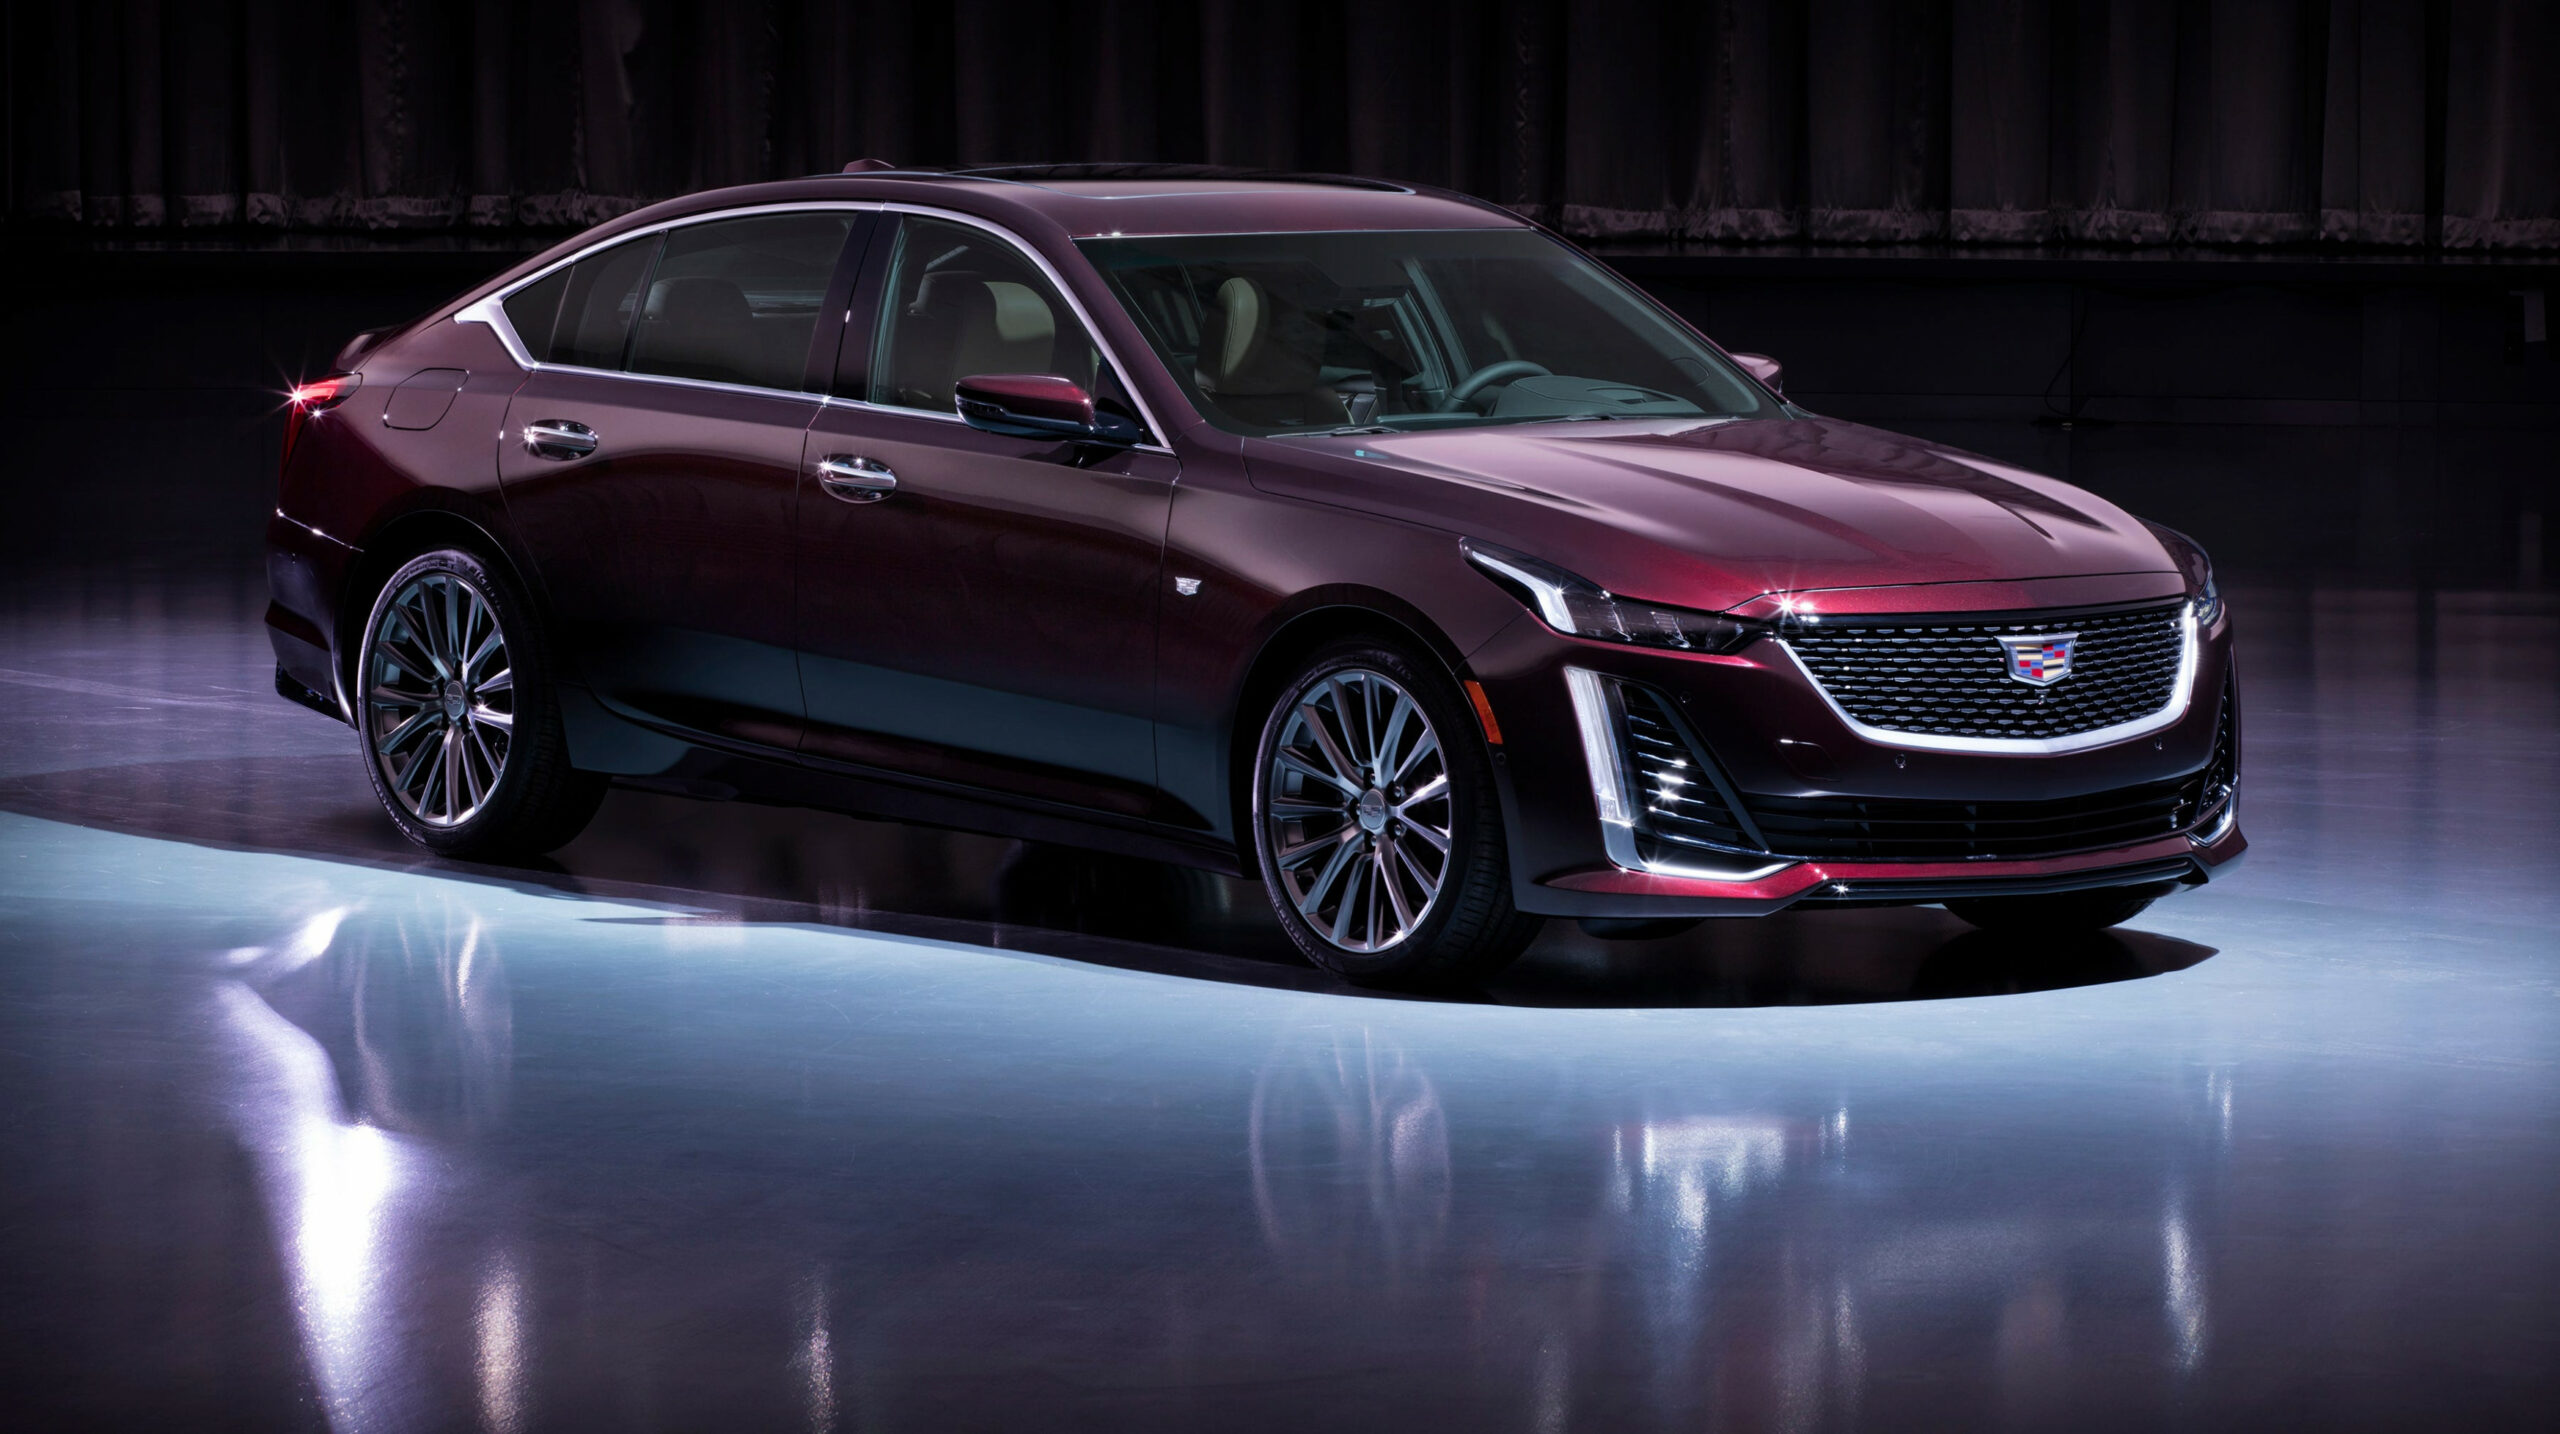 Cadillac reveals 6 CT6 Luxury sedan price - 2020 cadillac cts v price